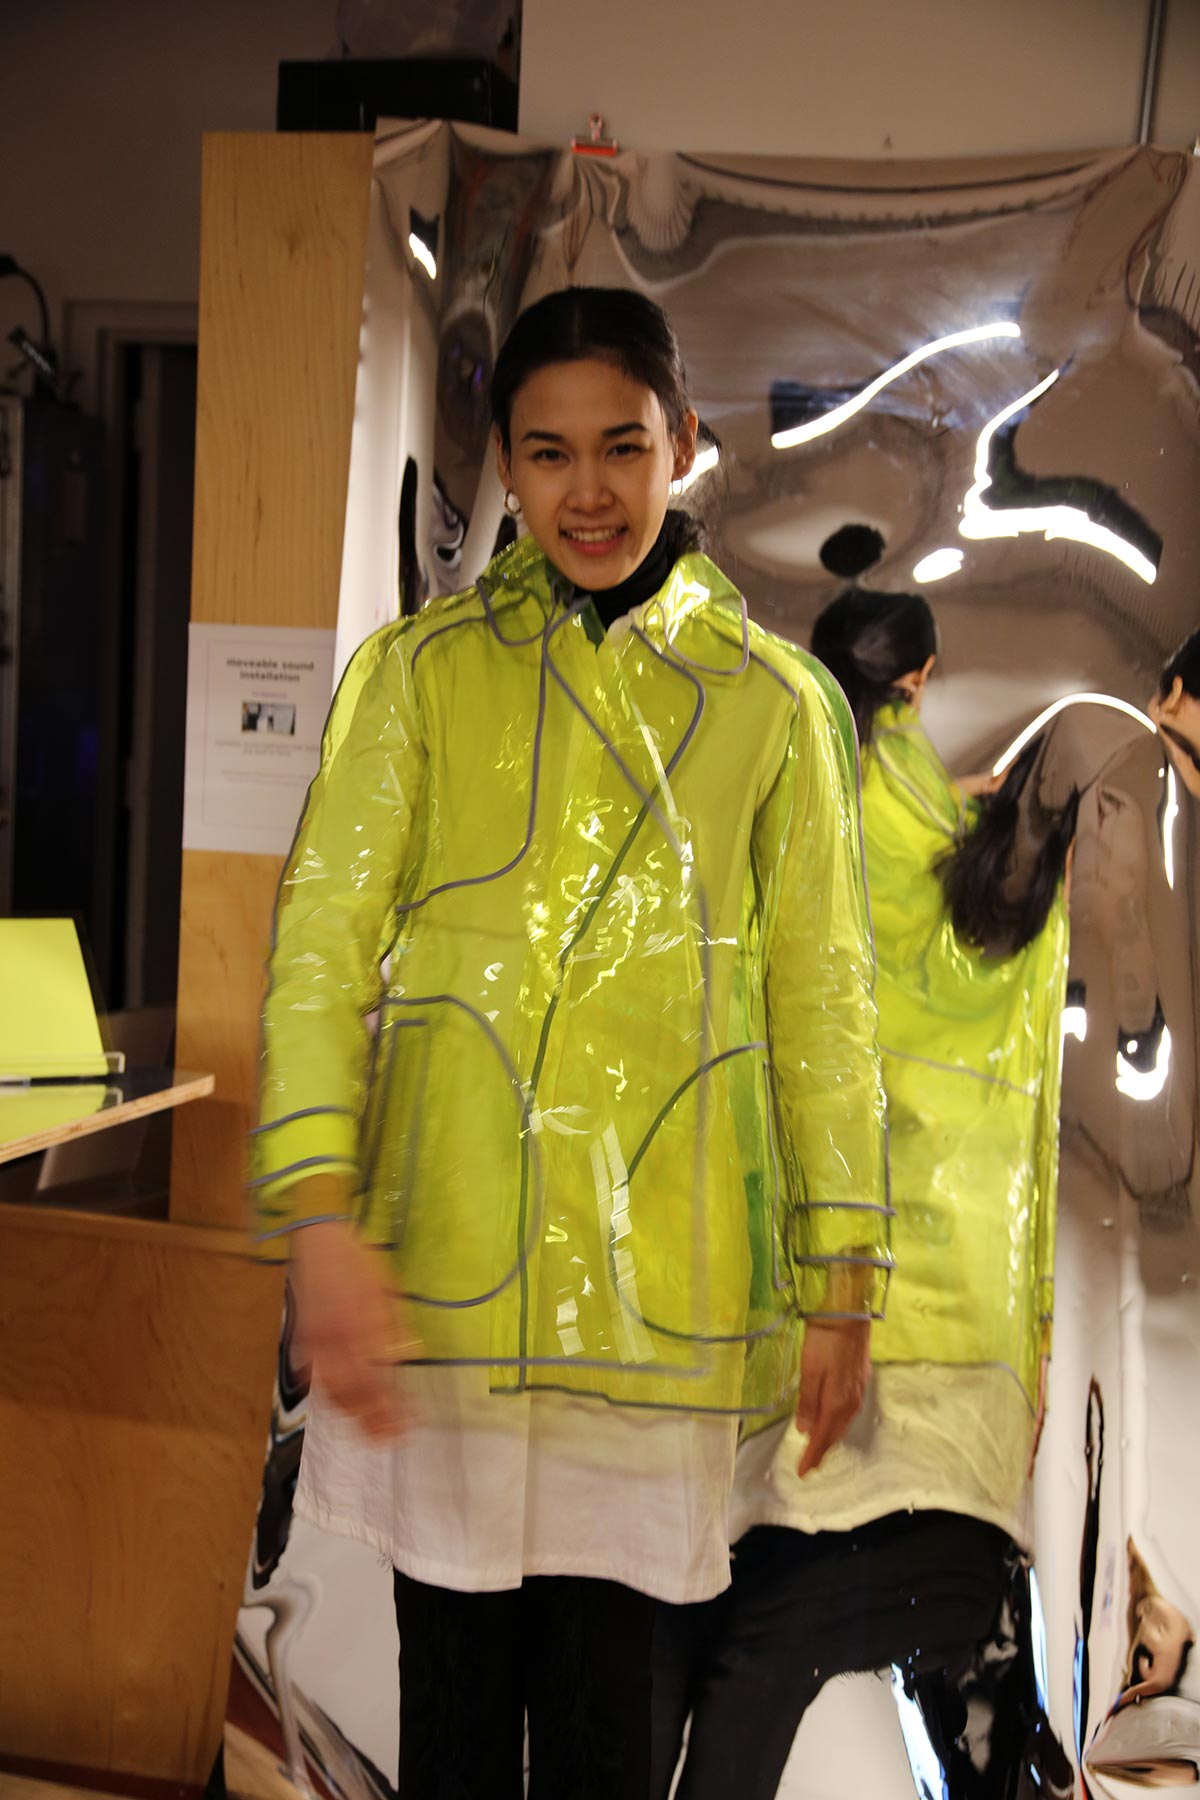 a woman wearing a fluorescent plastic raincoat